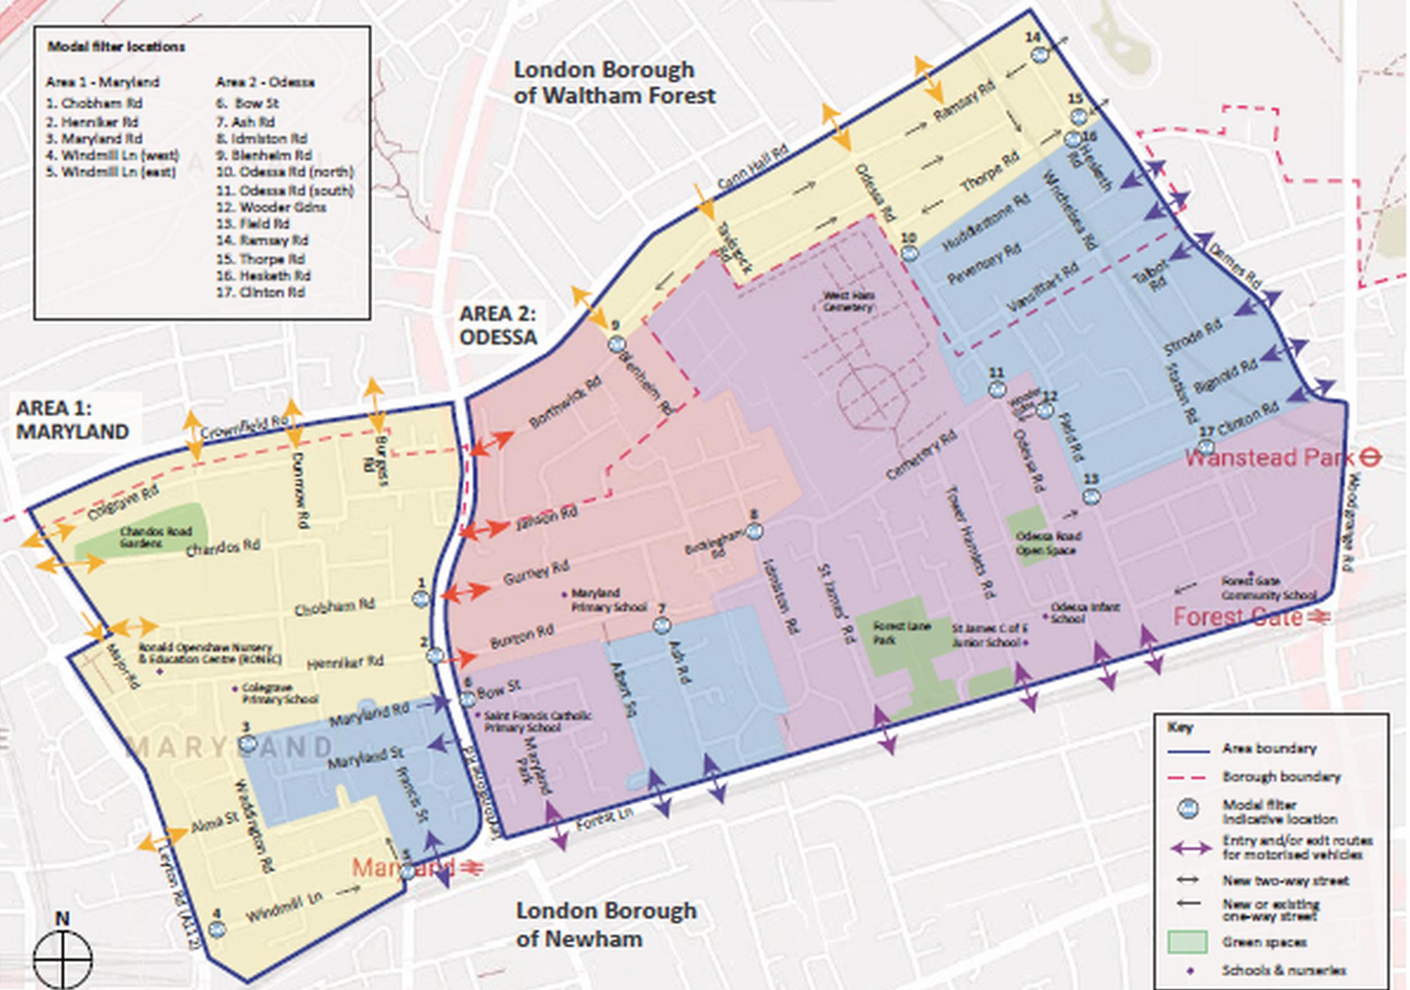 Low Traffic Neighbourhood connects Newham and Waltham Forest